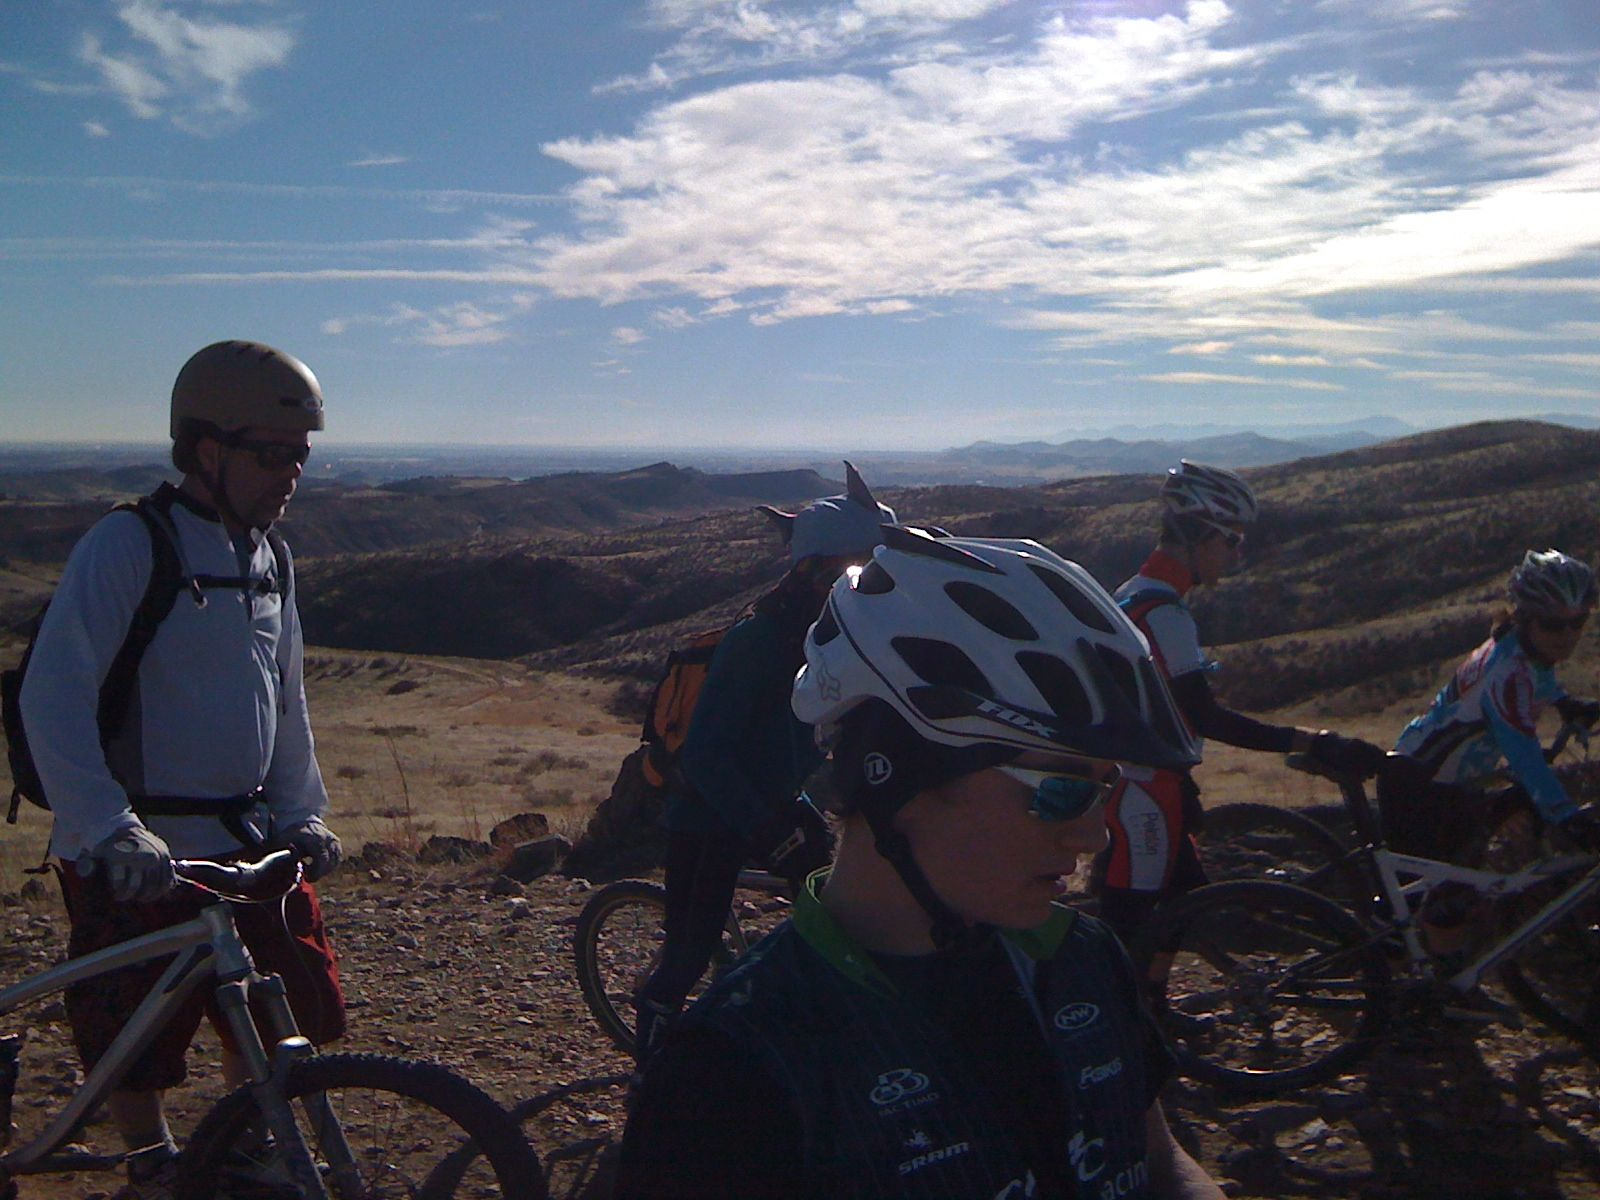 Grinch Grinder - Alternate 12/25 ride - AKA, Grinch Grinder HC-img_0646.jpg